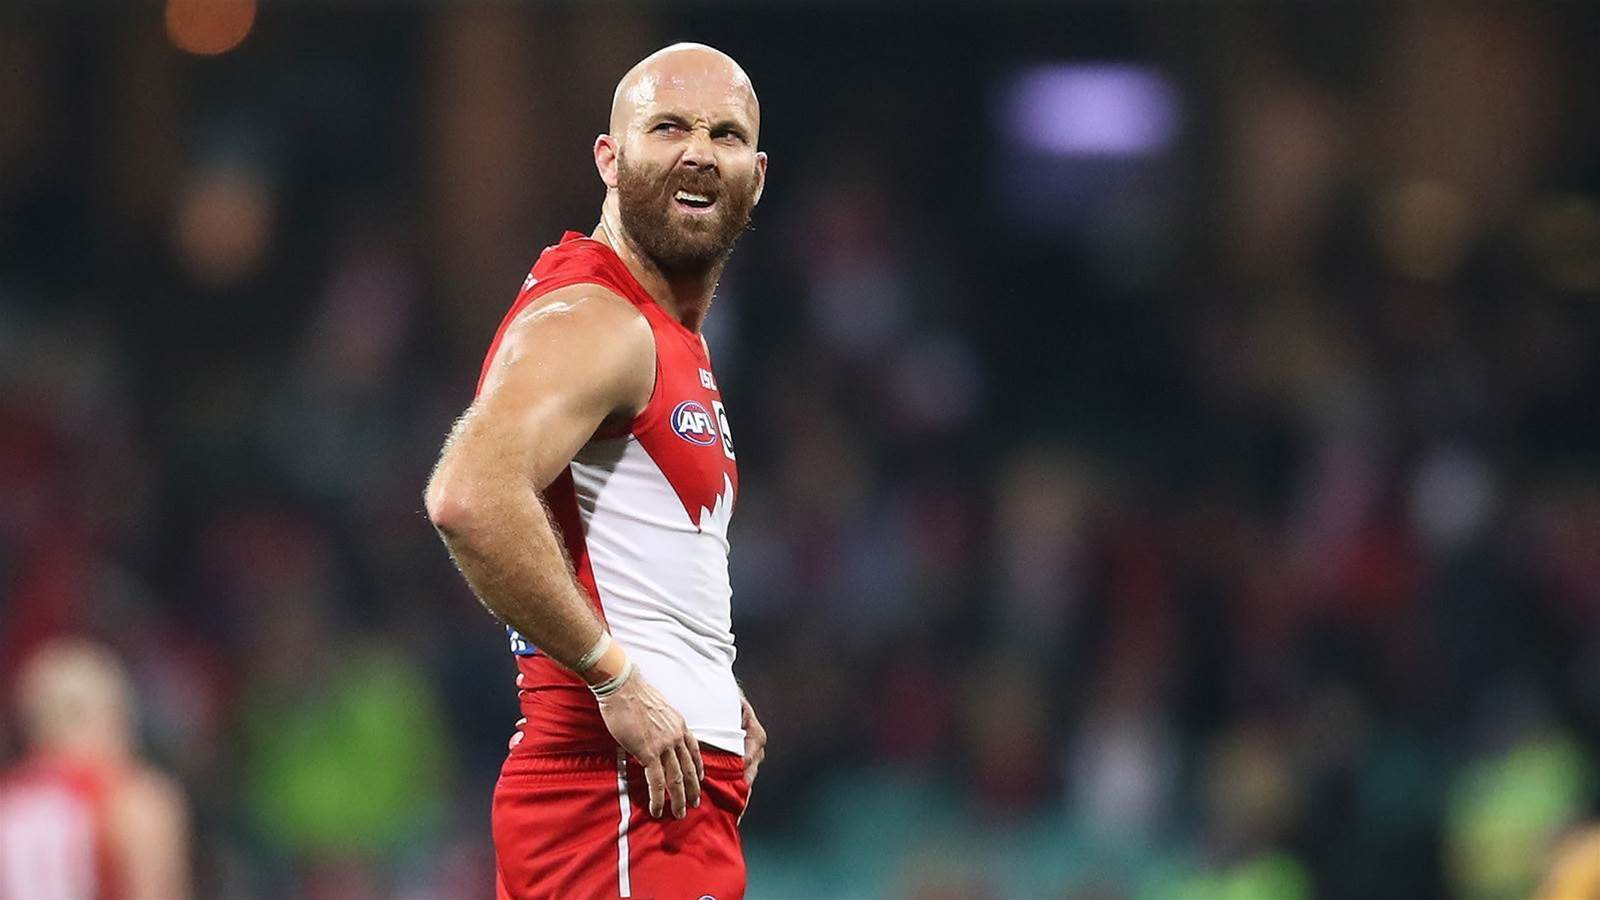 McVeigh back for 17th season